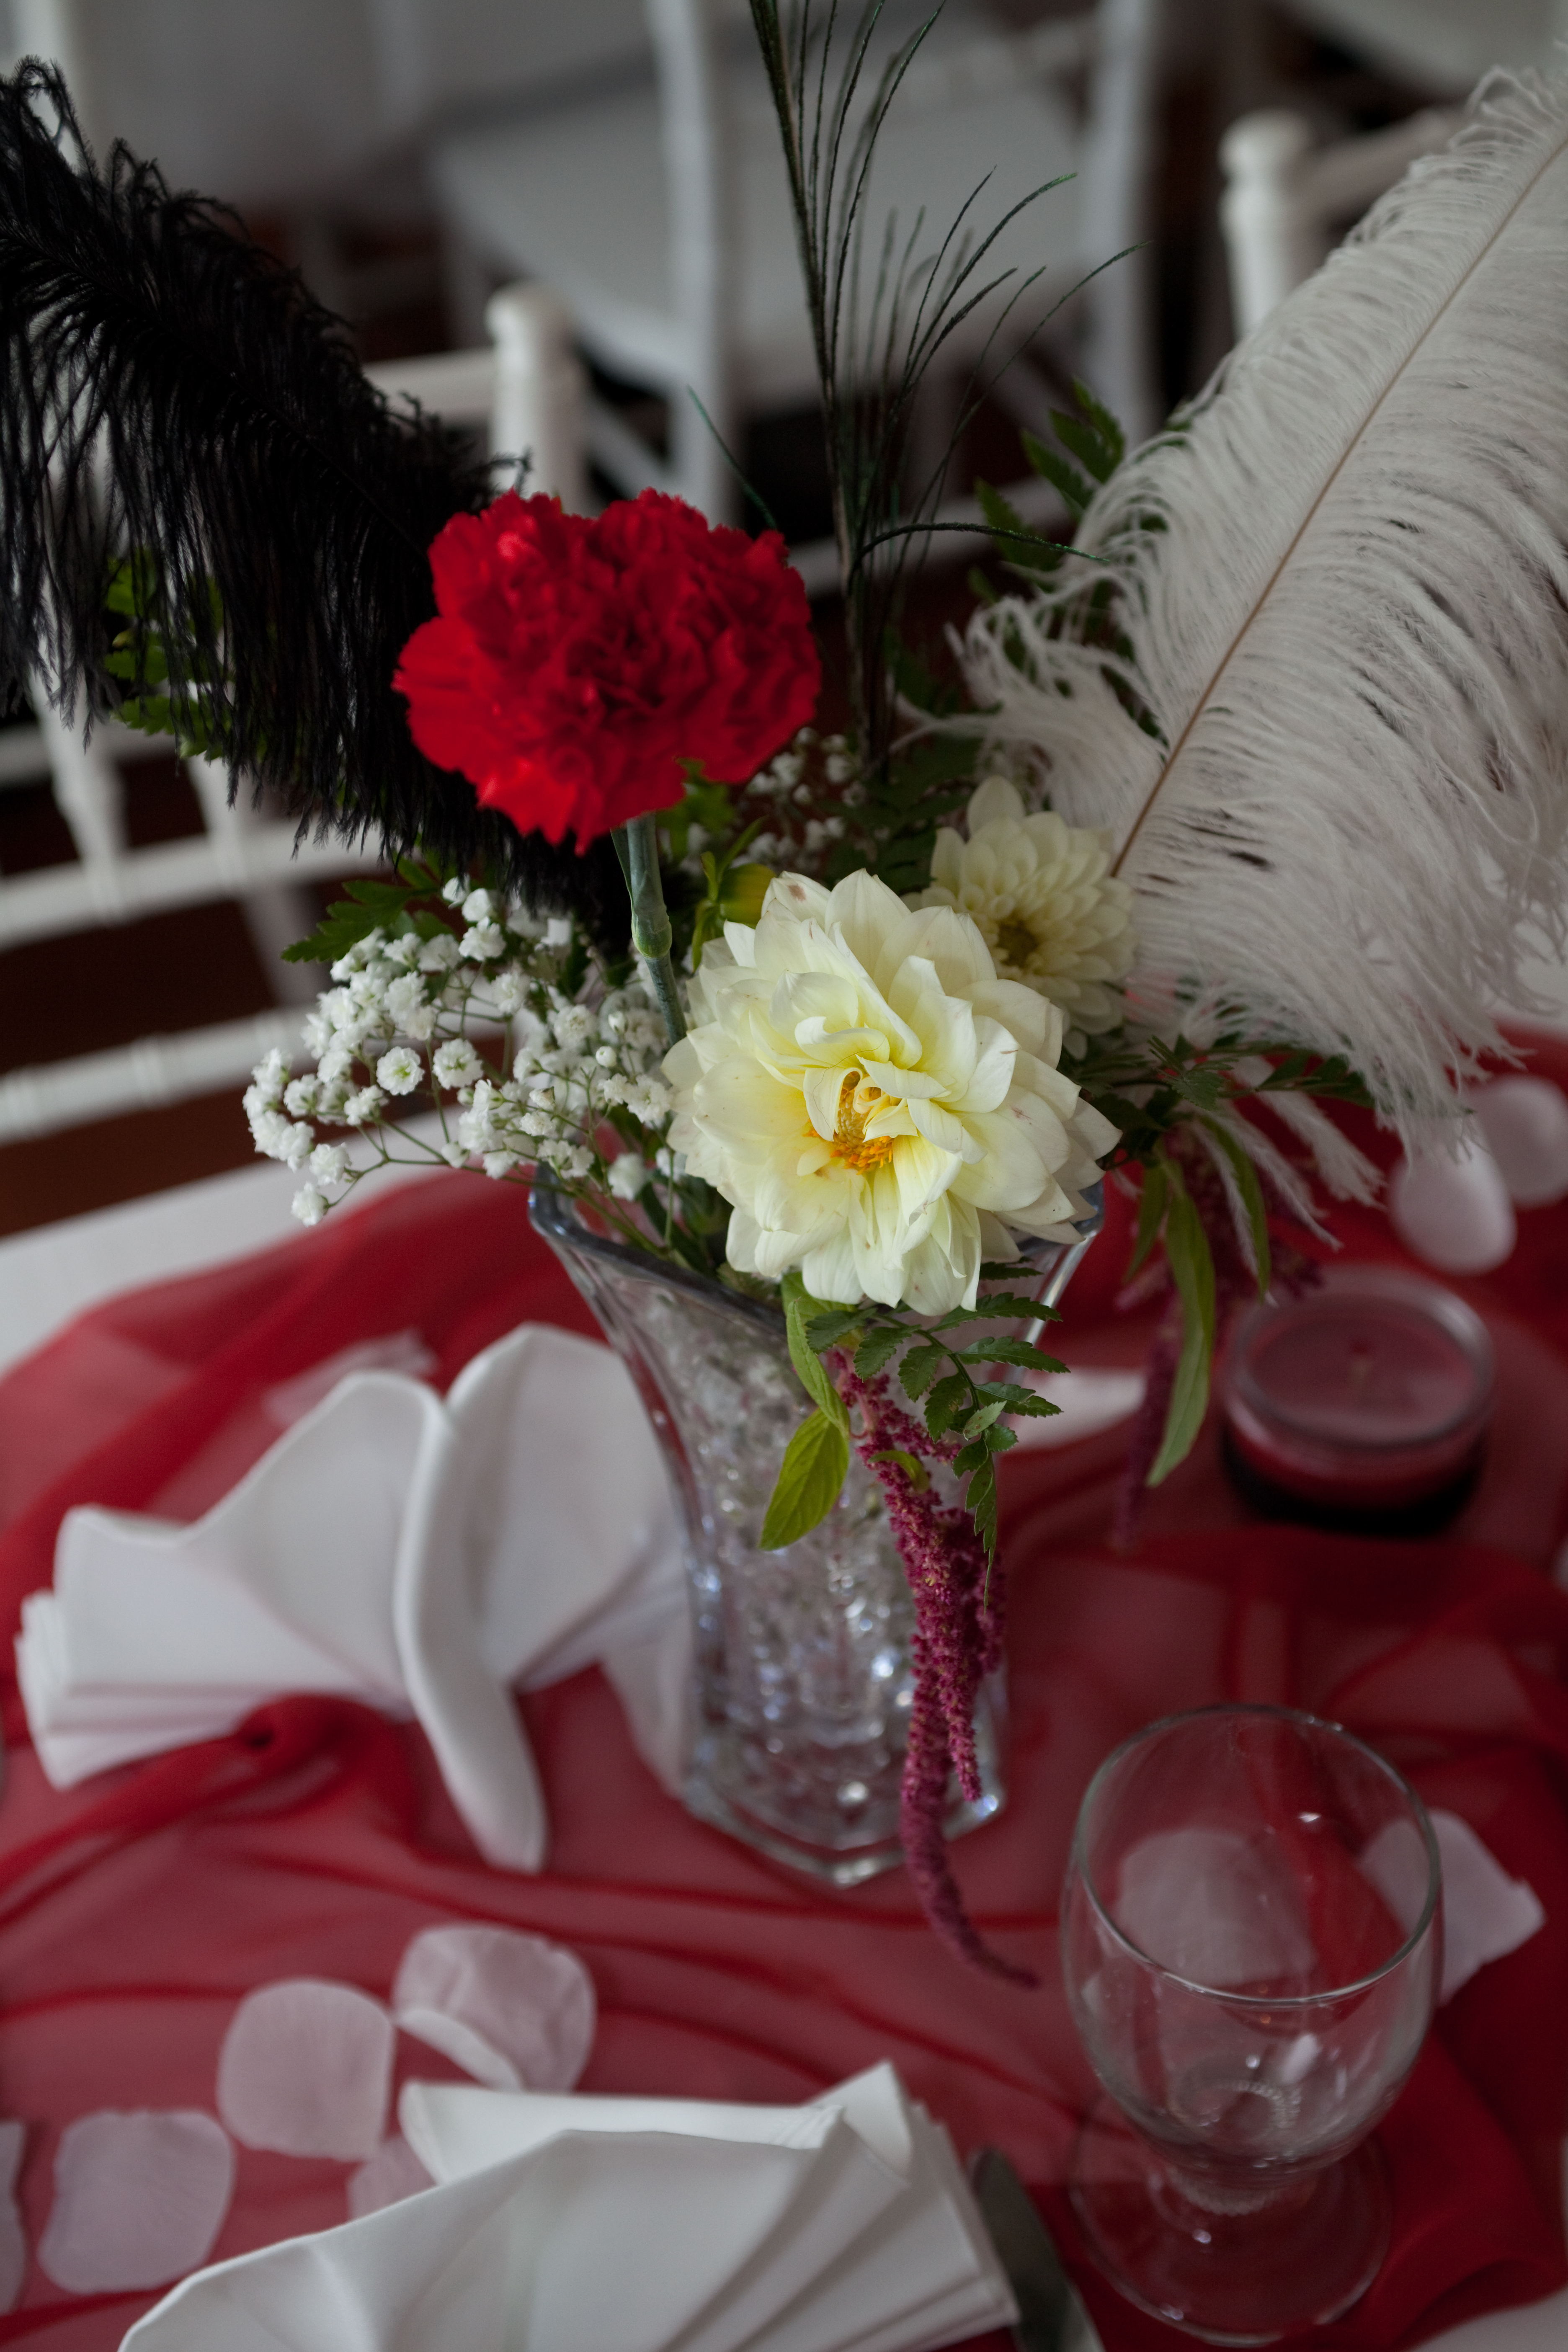 Wedding Table Centerpieces And Flowers 7 Steps